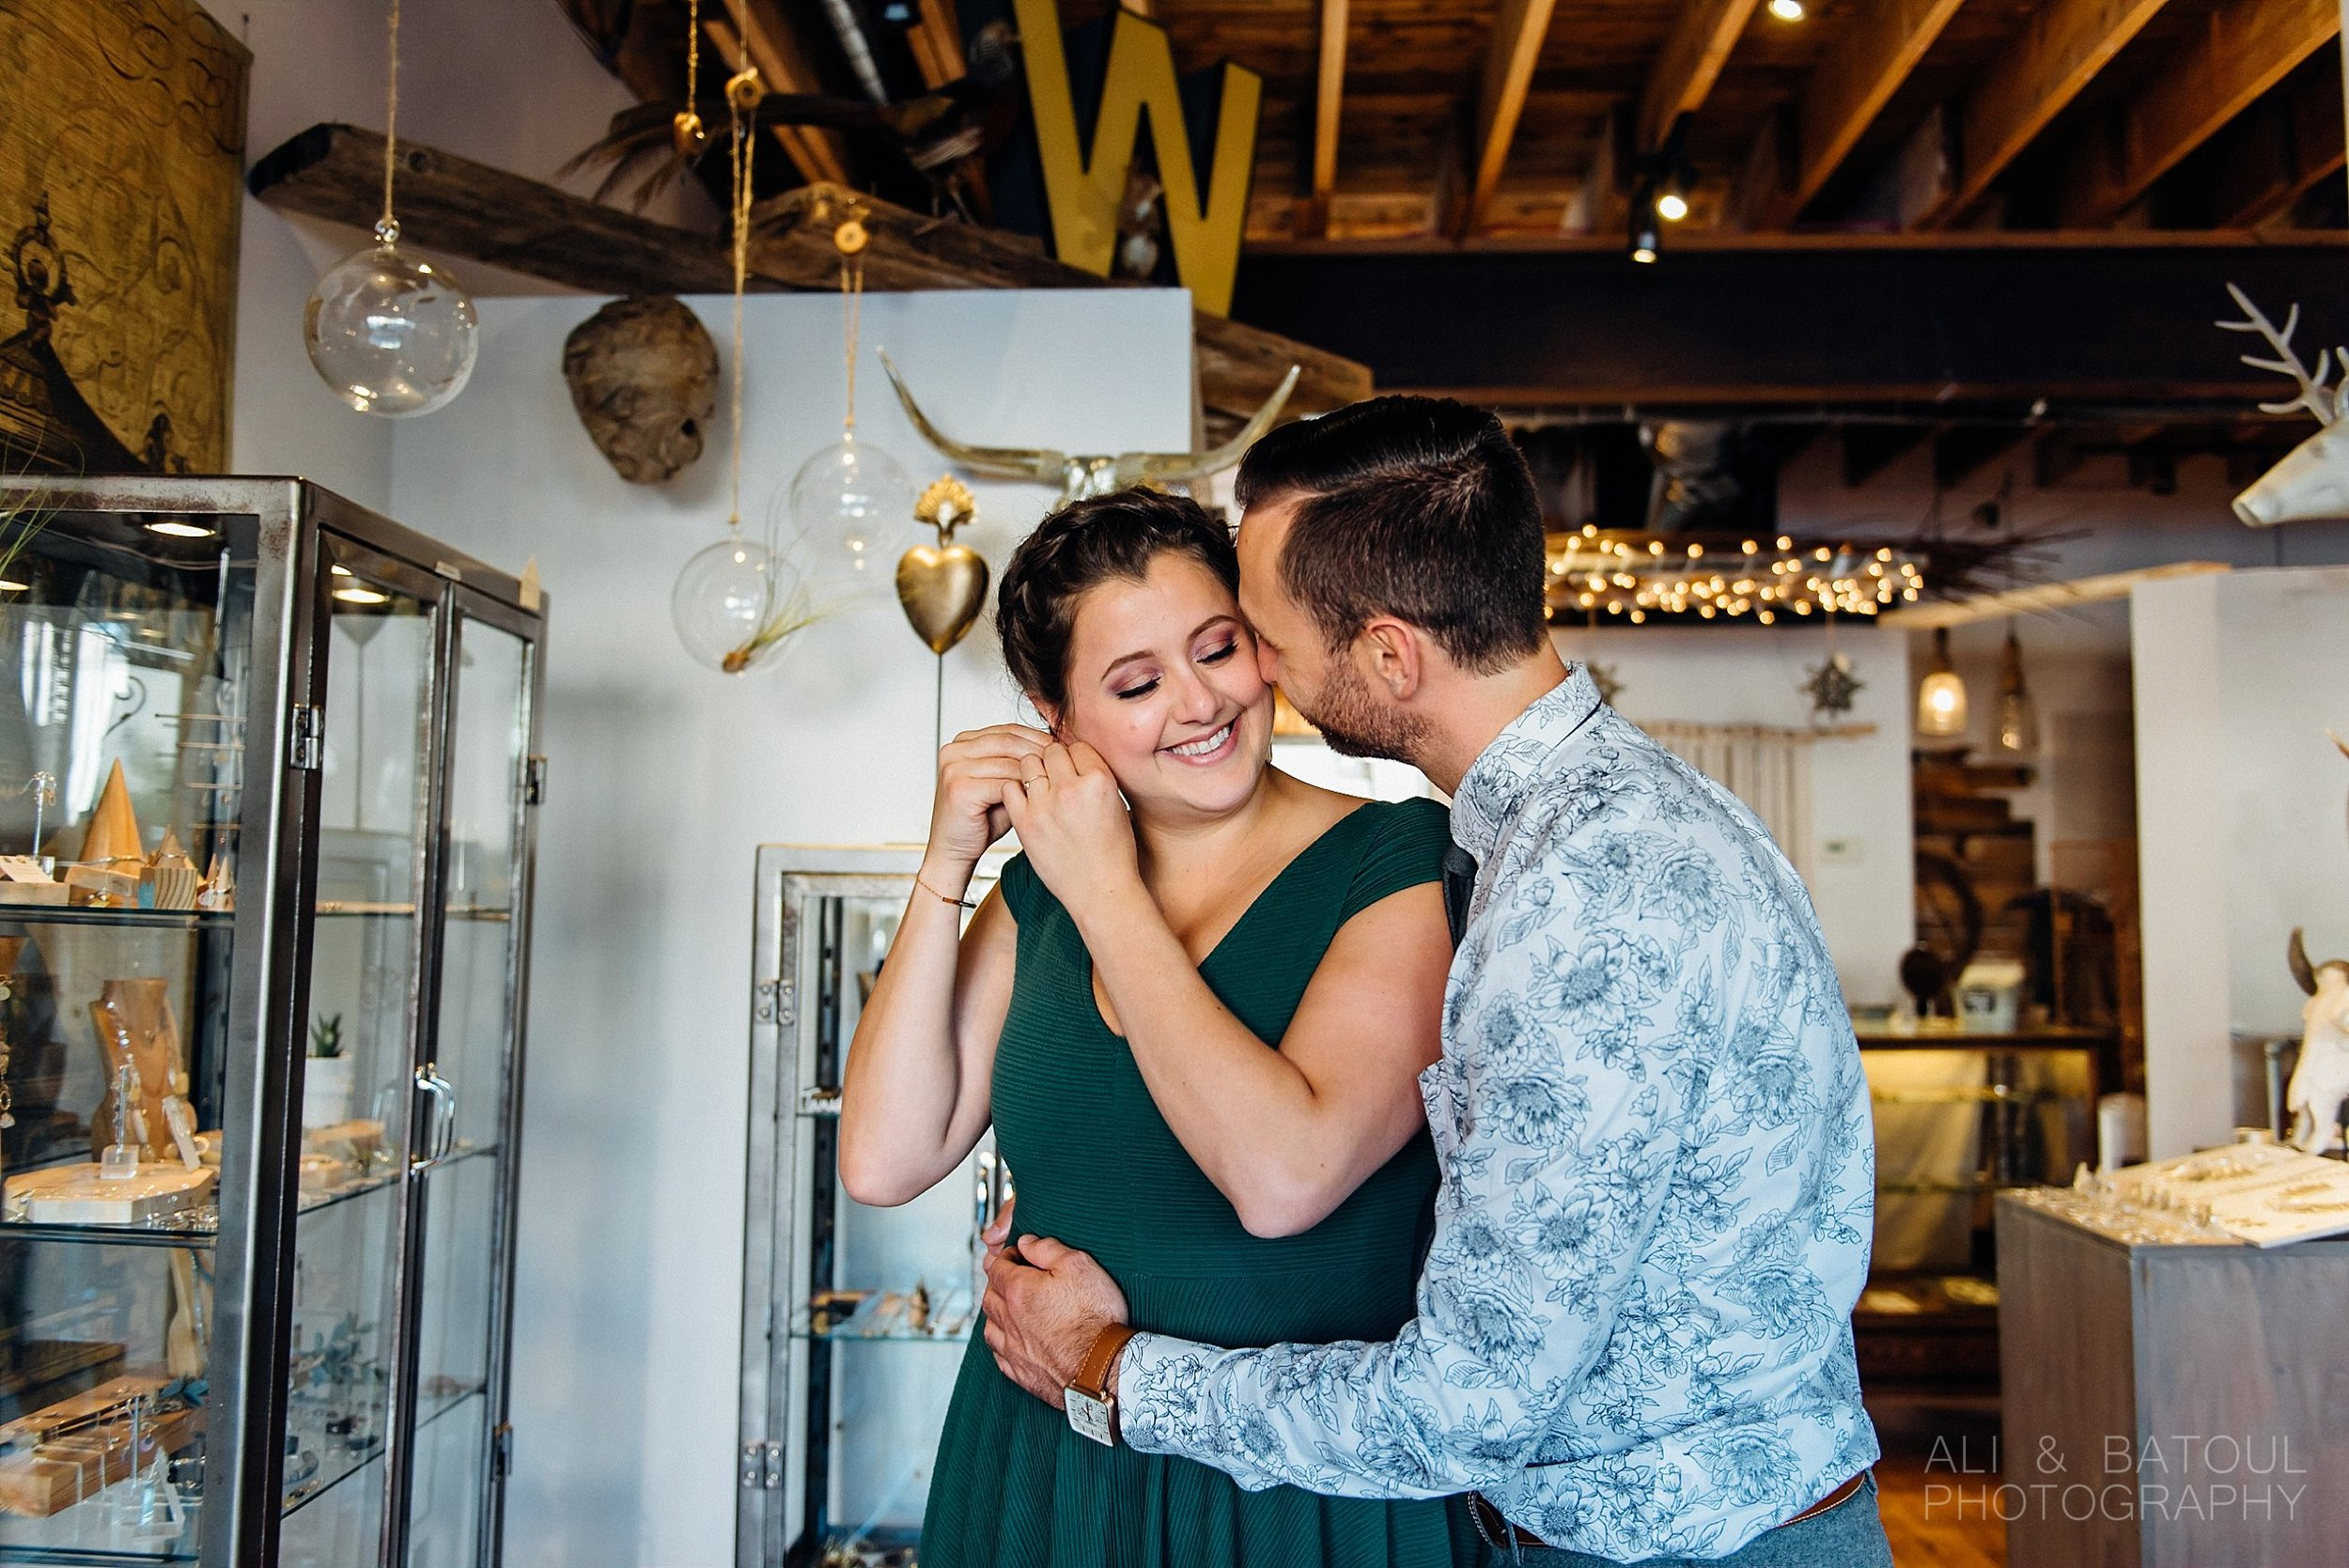 Ali and Batoul Photography - light, airy, indie documentary Ottawa wedding photographer_0054.jpg